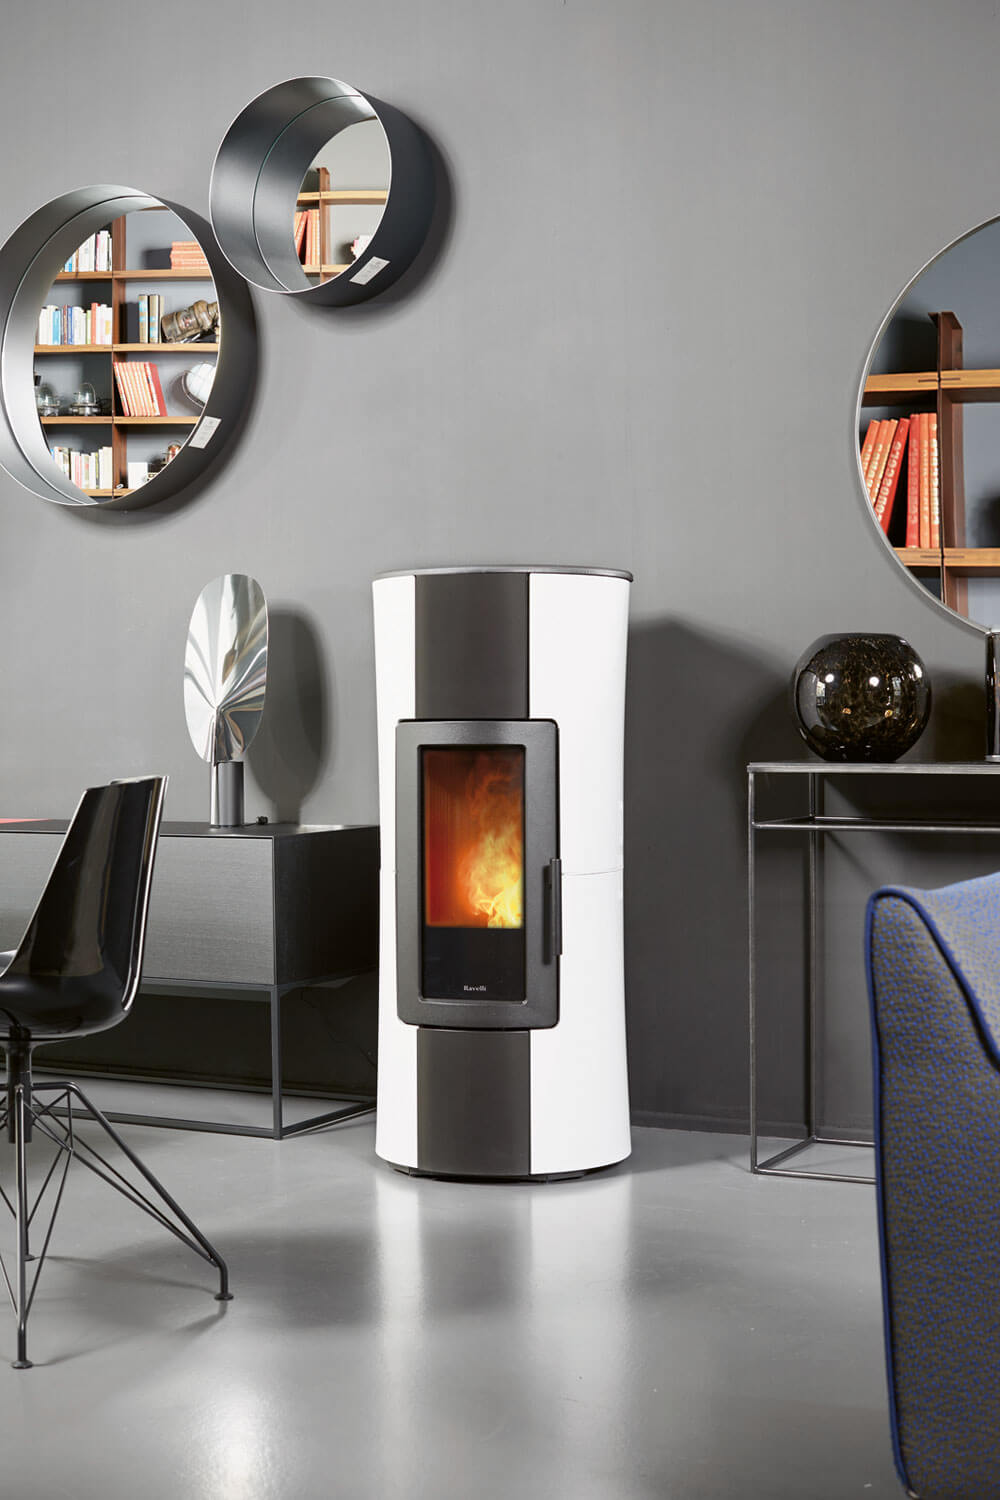 The stove Infinity by Ravelli